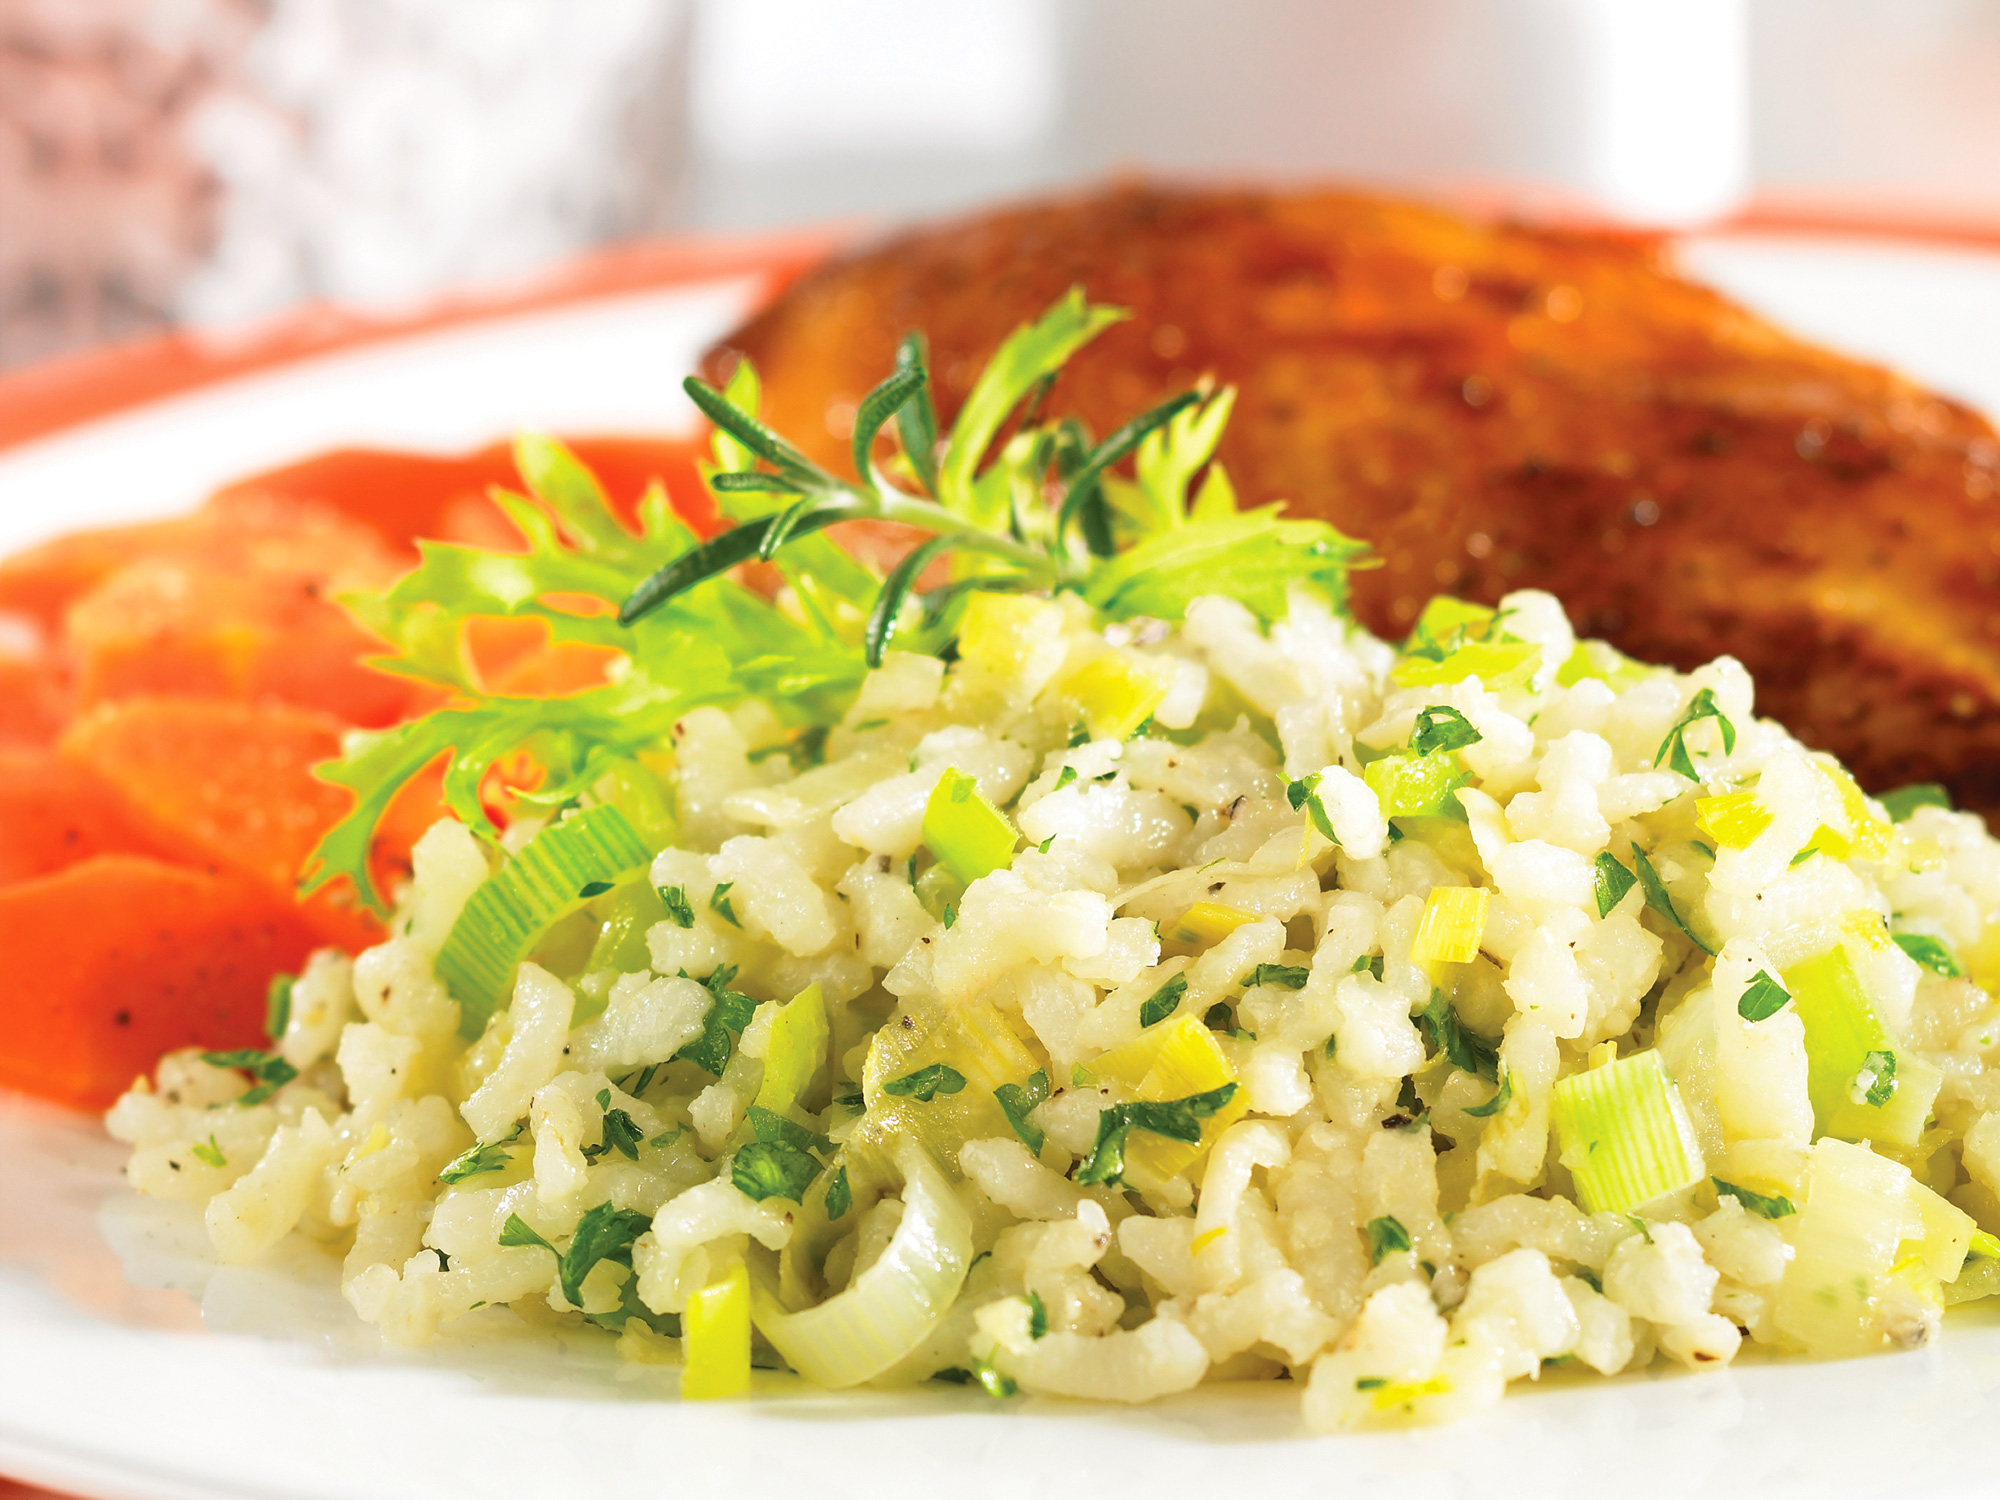 No constant stirring needed with this leek risotto made in the crockpot.